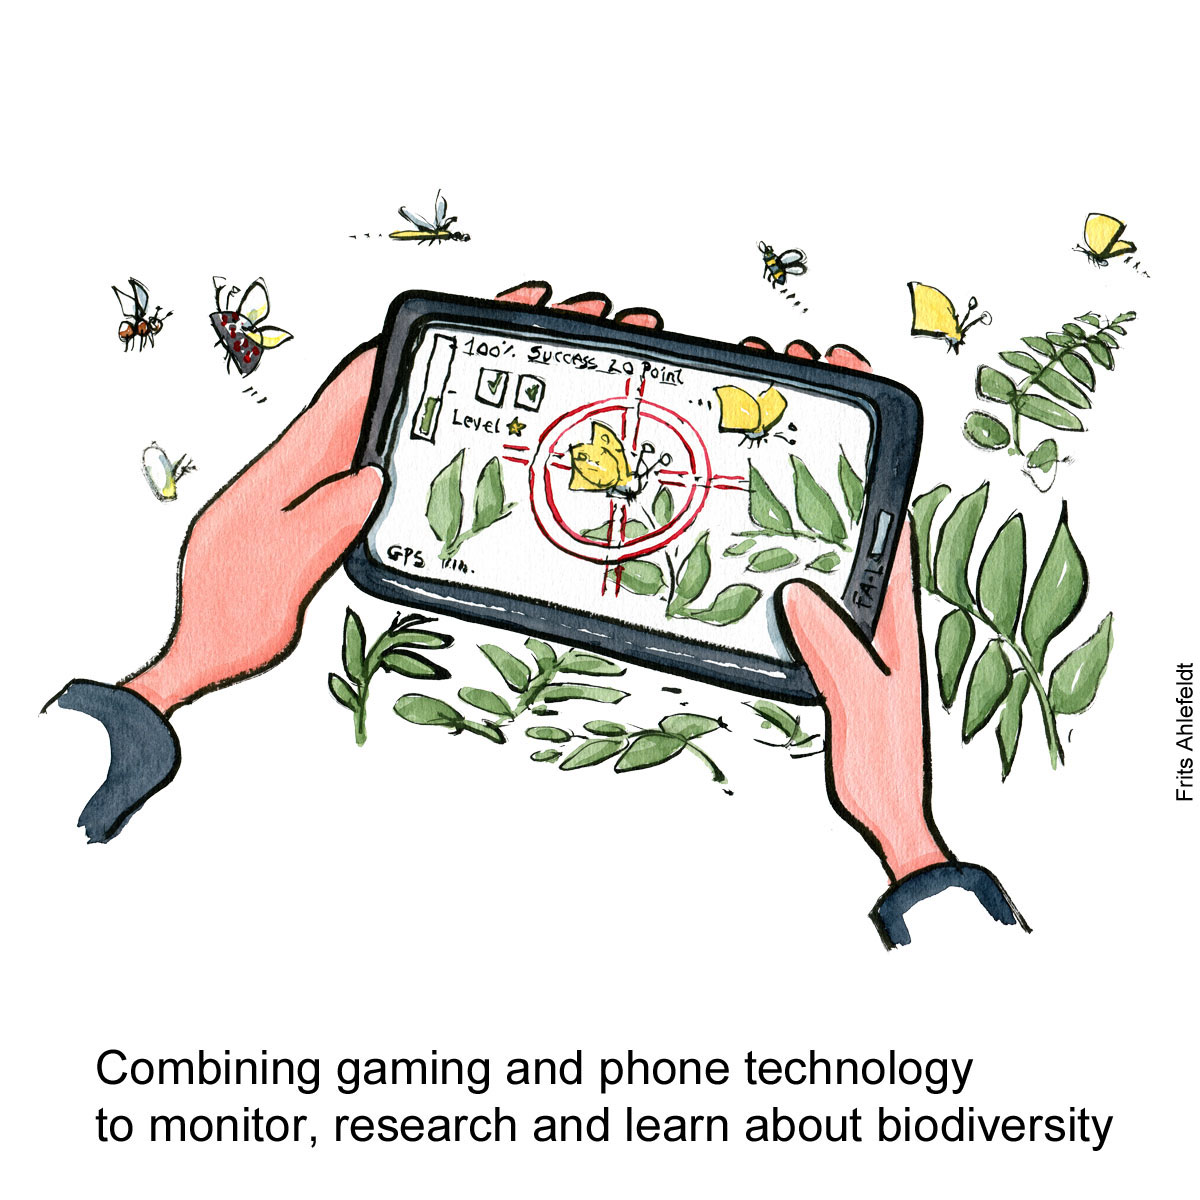 Drawing of a hand holding a phone with an app game that captures biodiversity, a bit like pokemon go. Environment drawing by Frits Ahlefeldt